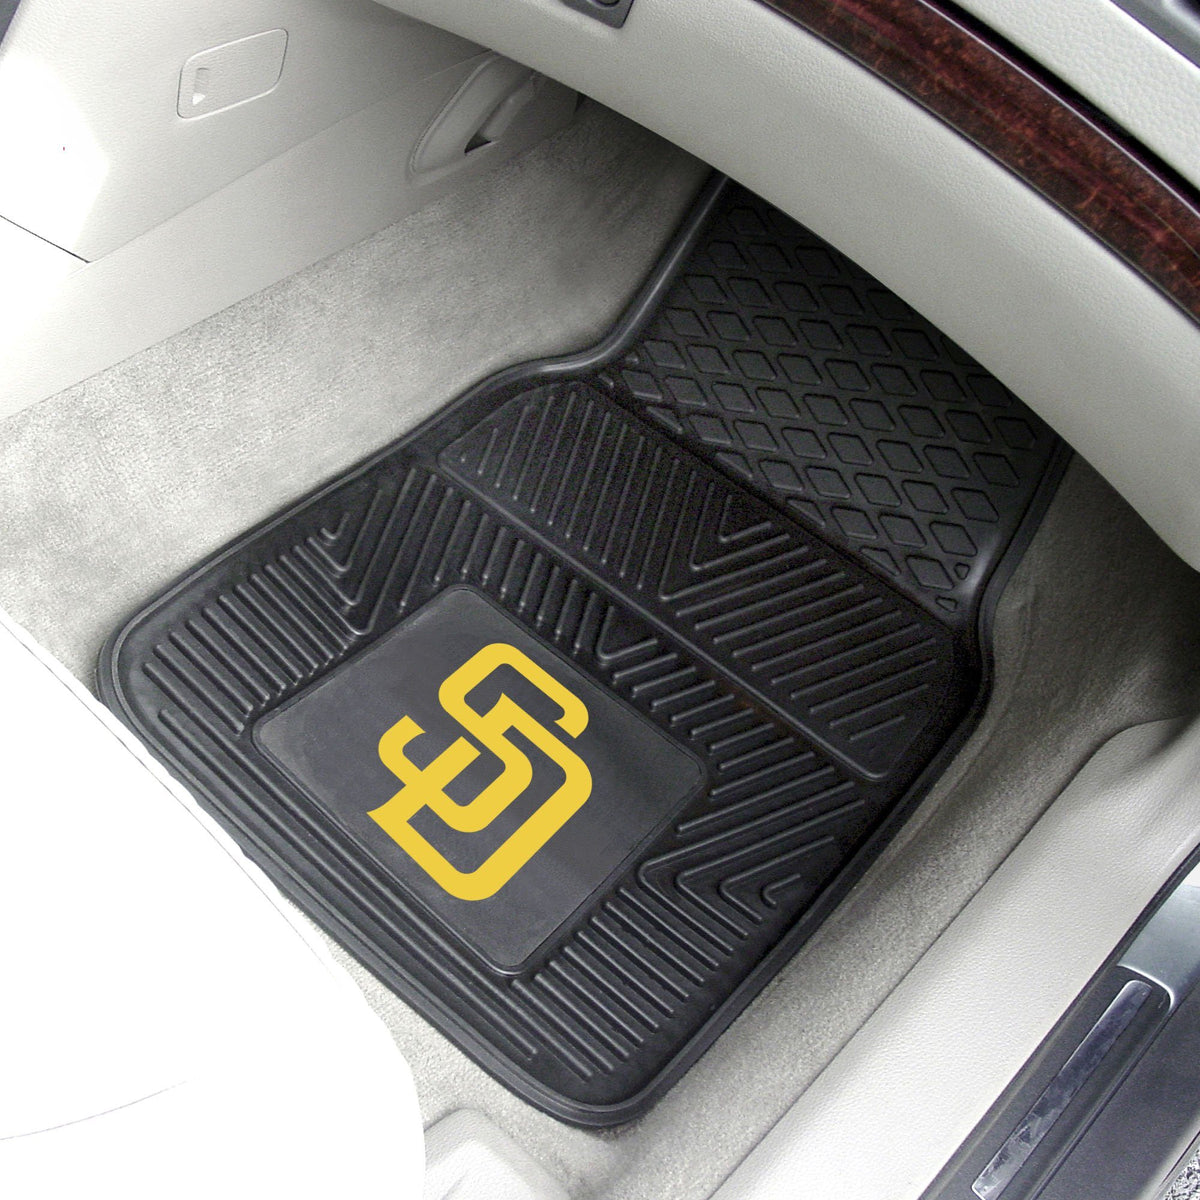 MLB - Vinyl Car Mat, 2-Piece Set MLB Mats, Front Car Mats, 2-pc Vinyl Car Mat Set, MLB, Auto Fan Mats San Diego Padres